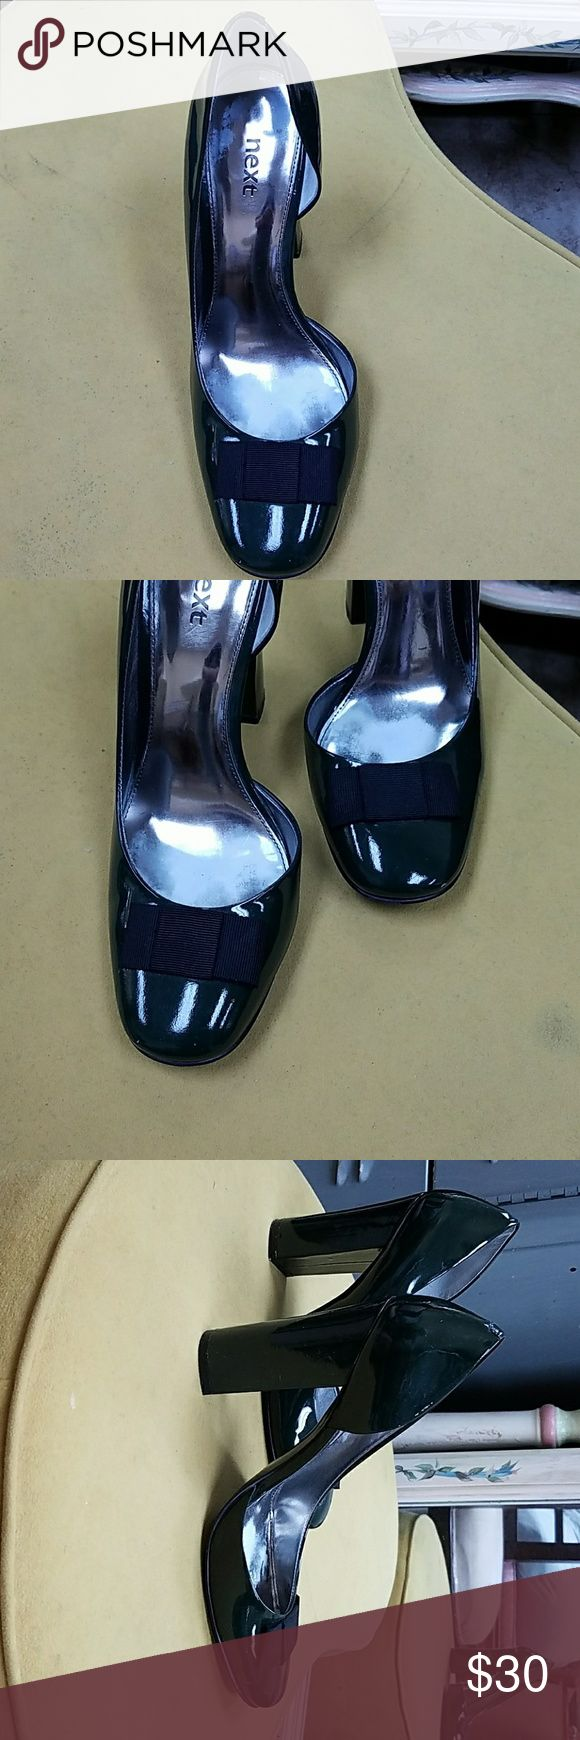 Next heels Size 7 Next heels Size 7 Shoes Heels